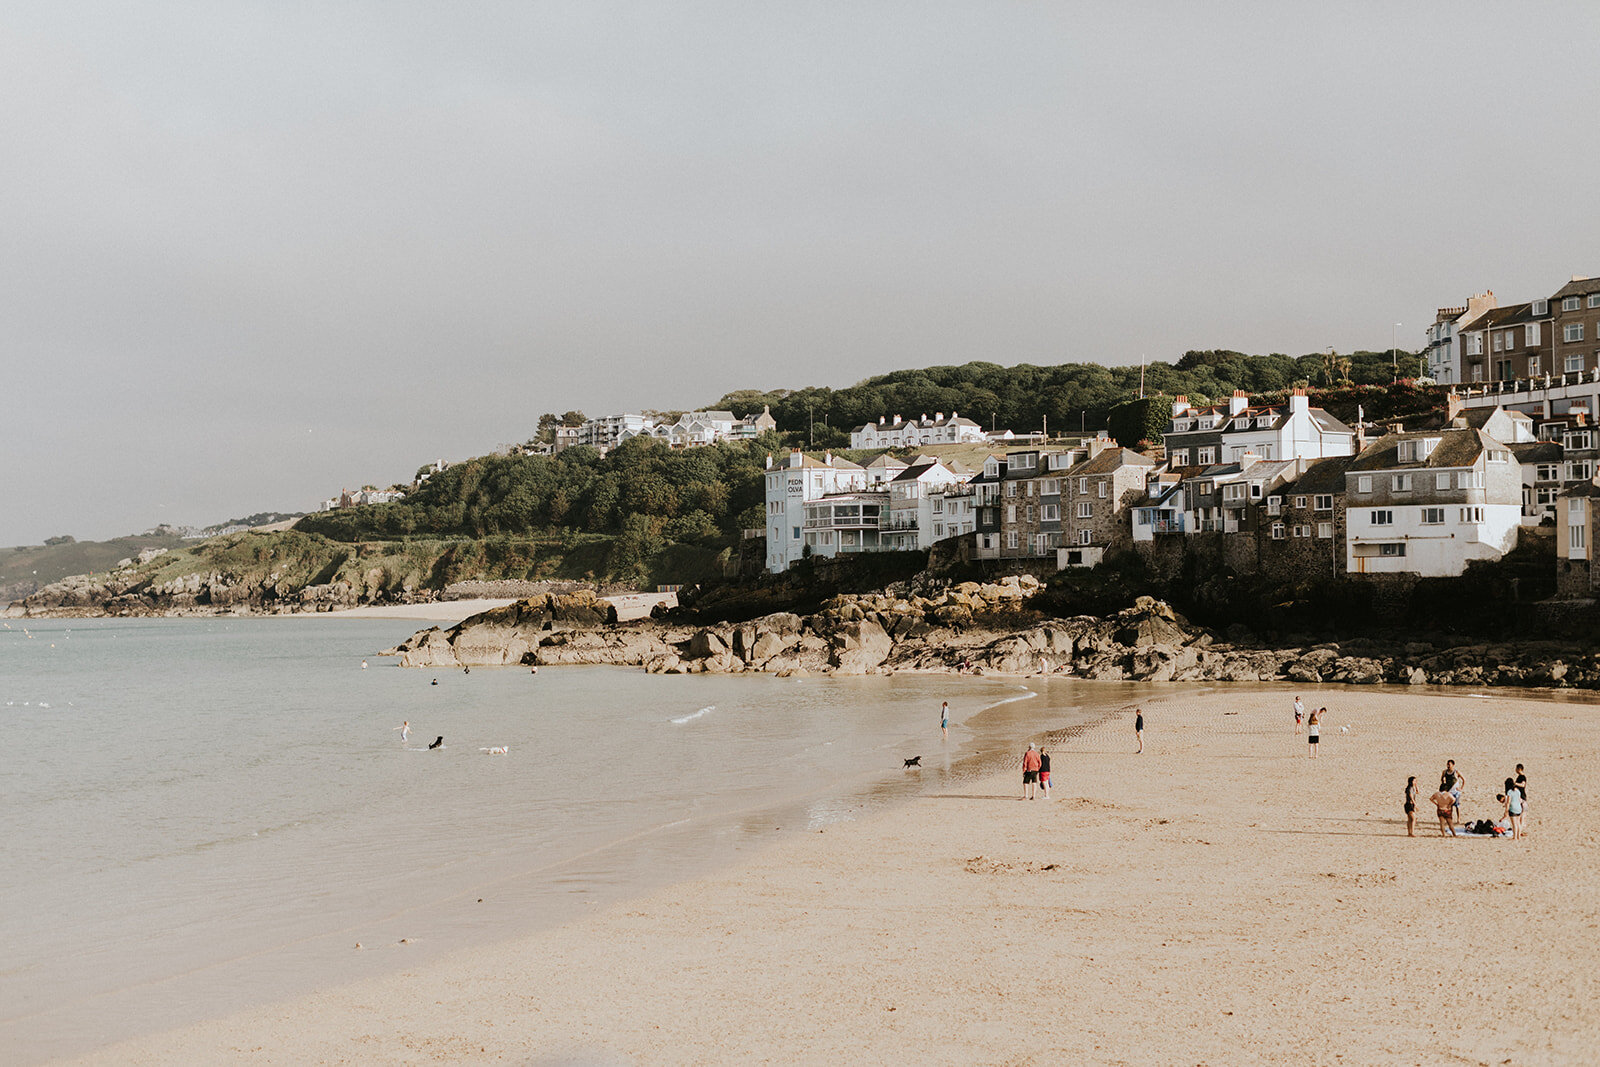 UK-wedding-Destination-Photograher-st-ives-cornwall-london-photographer-elopement-claudia-pj-wedding-0742_websize.jpg